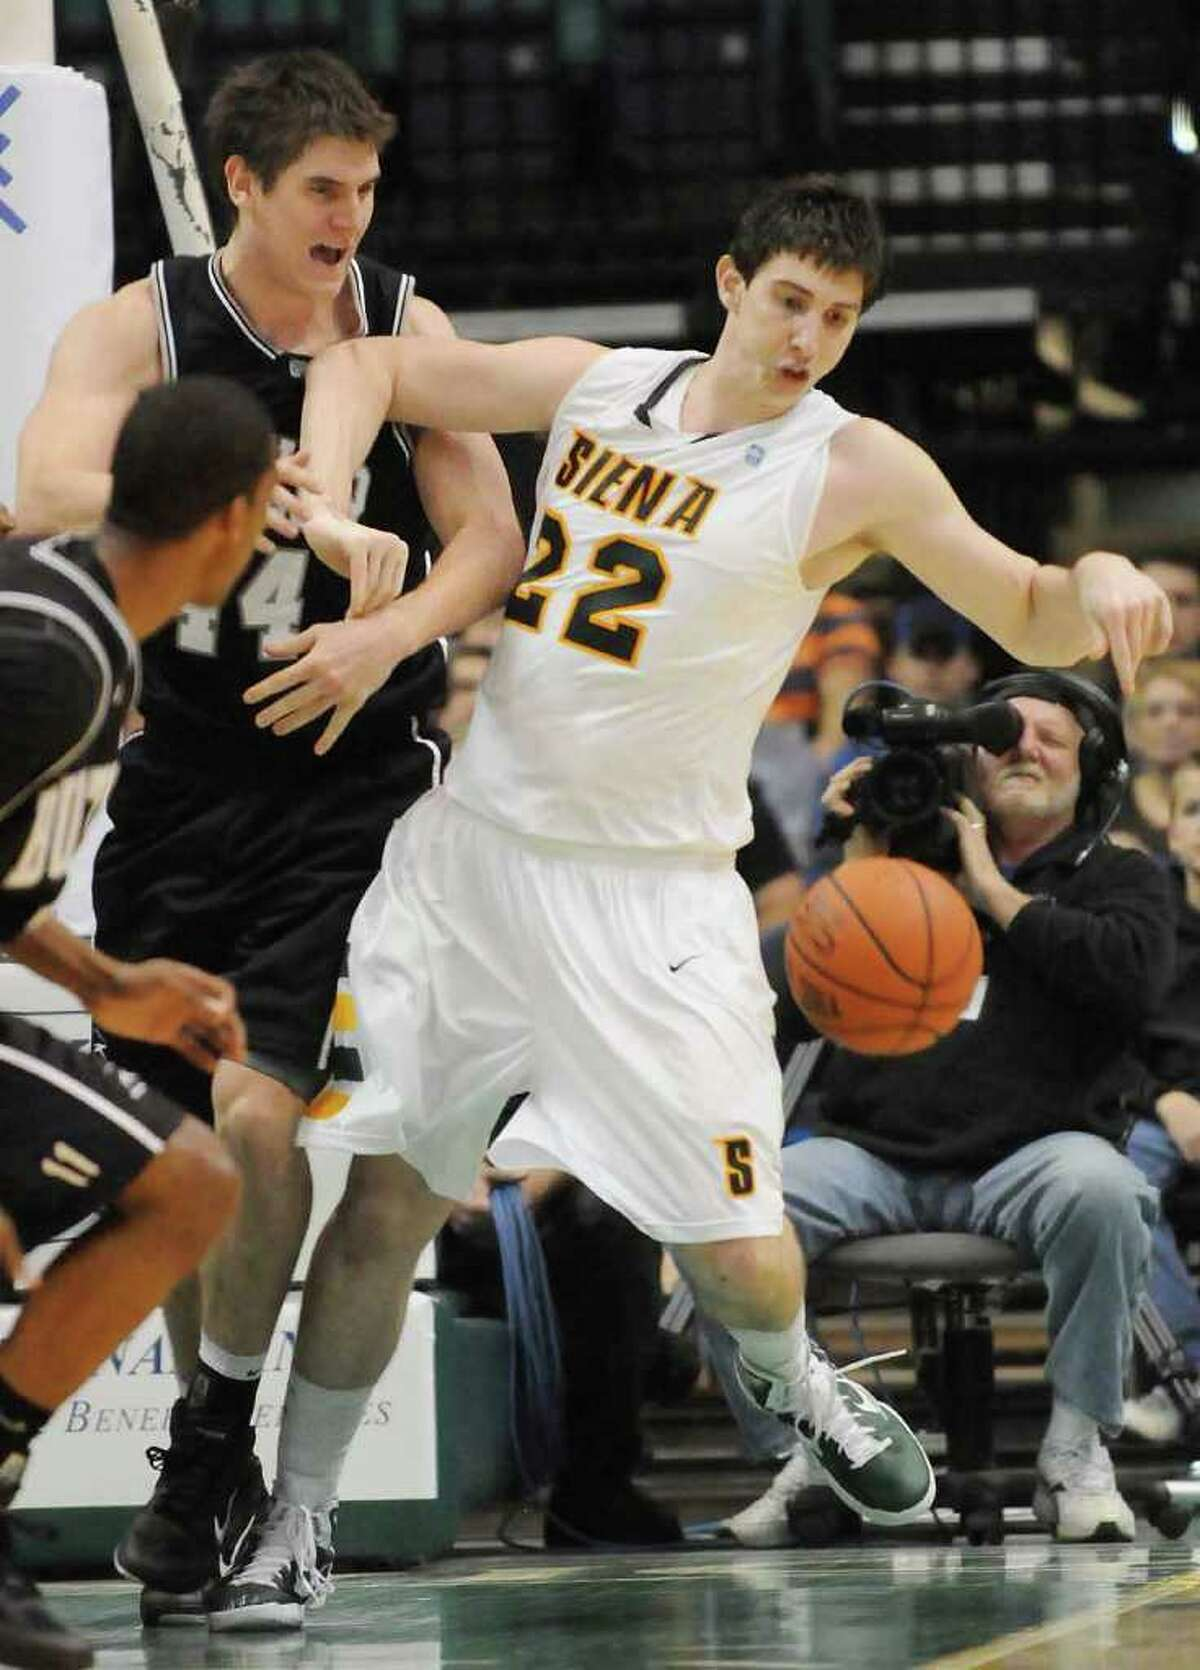 L-R: No. 44, Butler's Andrew Smith, mixes it up under the basket, and tries to muscle No. 22, Siena's Ryan Rossiter, for the loose ball in College Basketball action at The Times Union Center, in Albany, NY, on Tuesday, Nov. 23, 2010. Siena lost. Photos for Daily Sports Dept. coverage. (Luanne M. Ferris / Times Union)